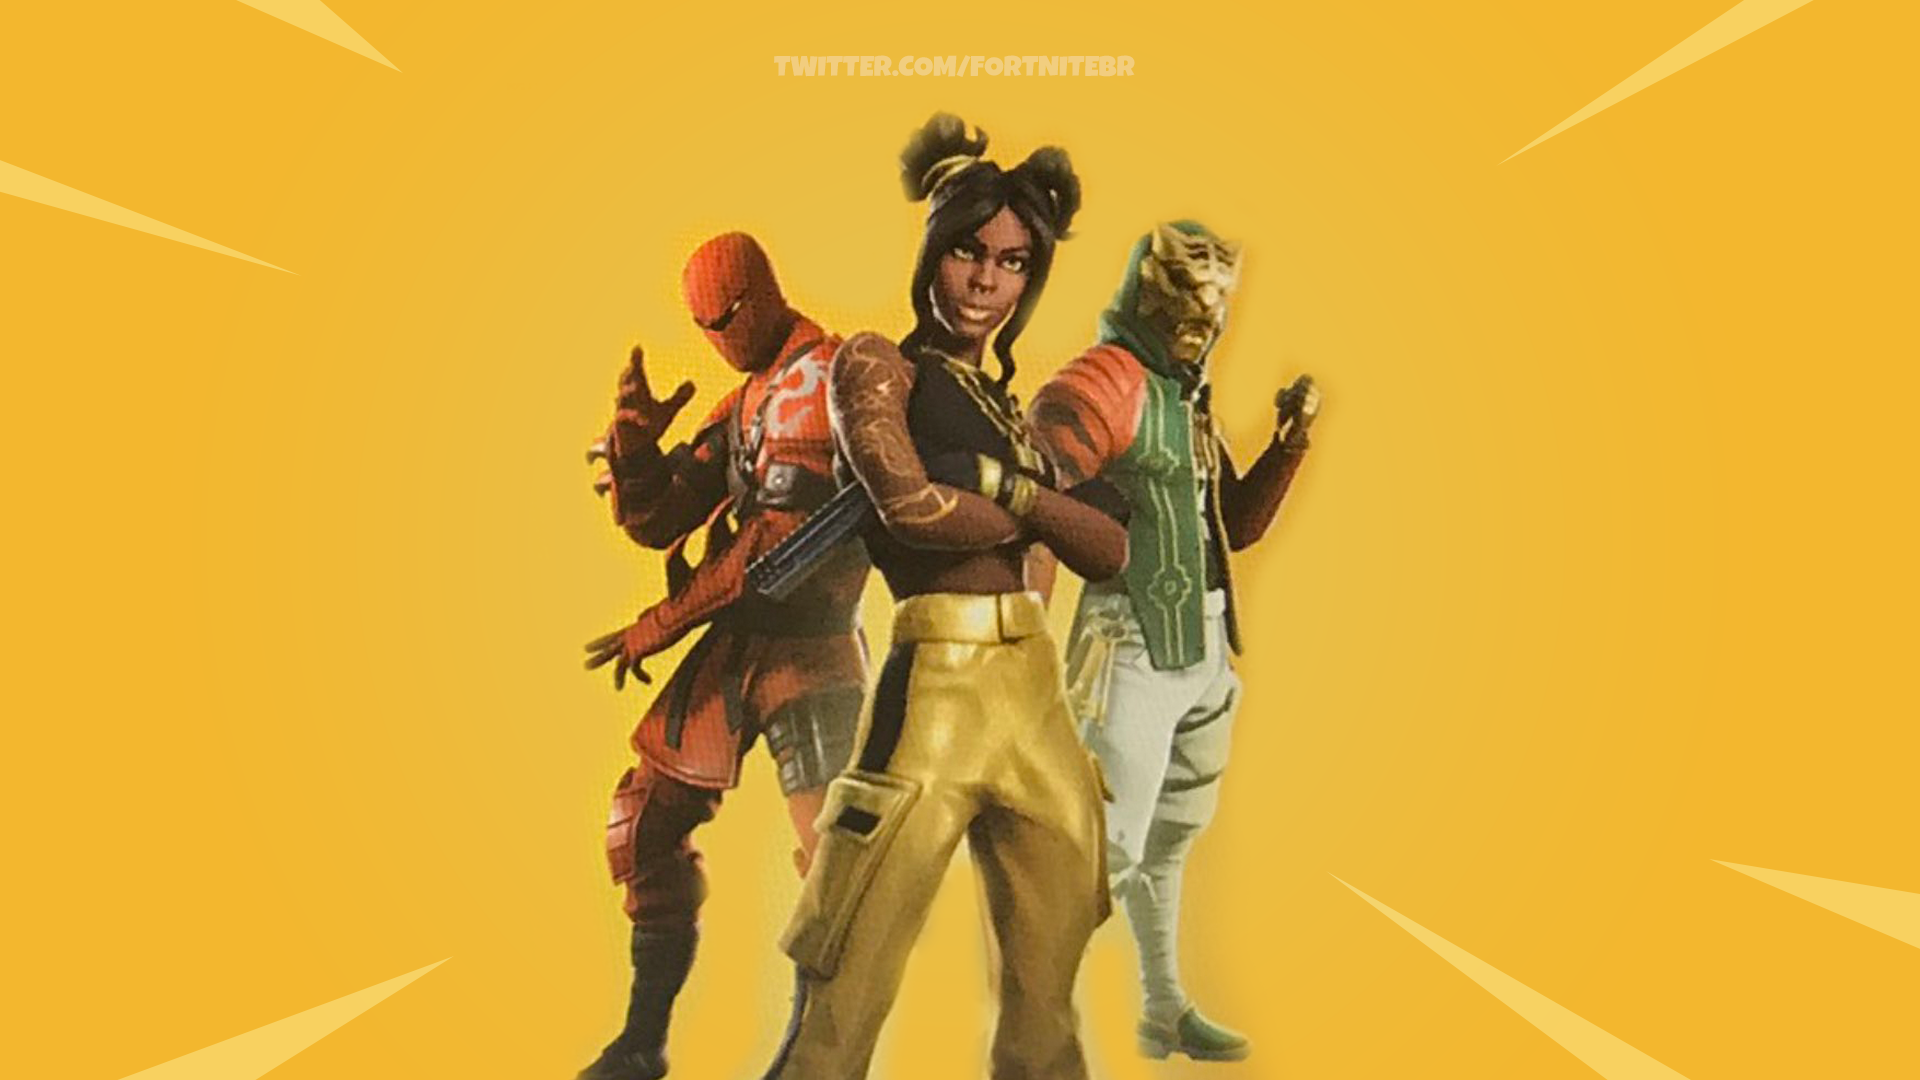 Fortnite Luxe Wallpaper Fortnite Stuff 1920x1080